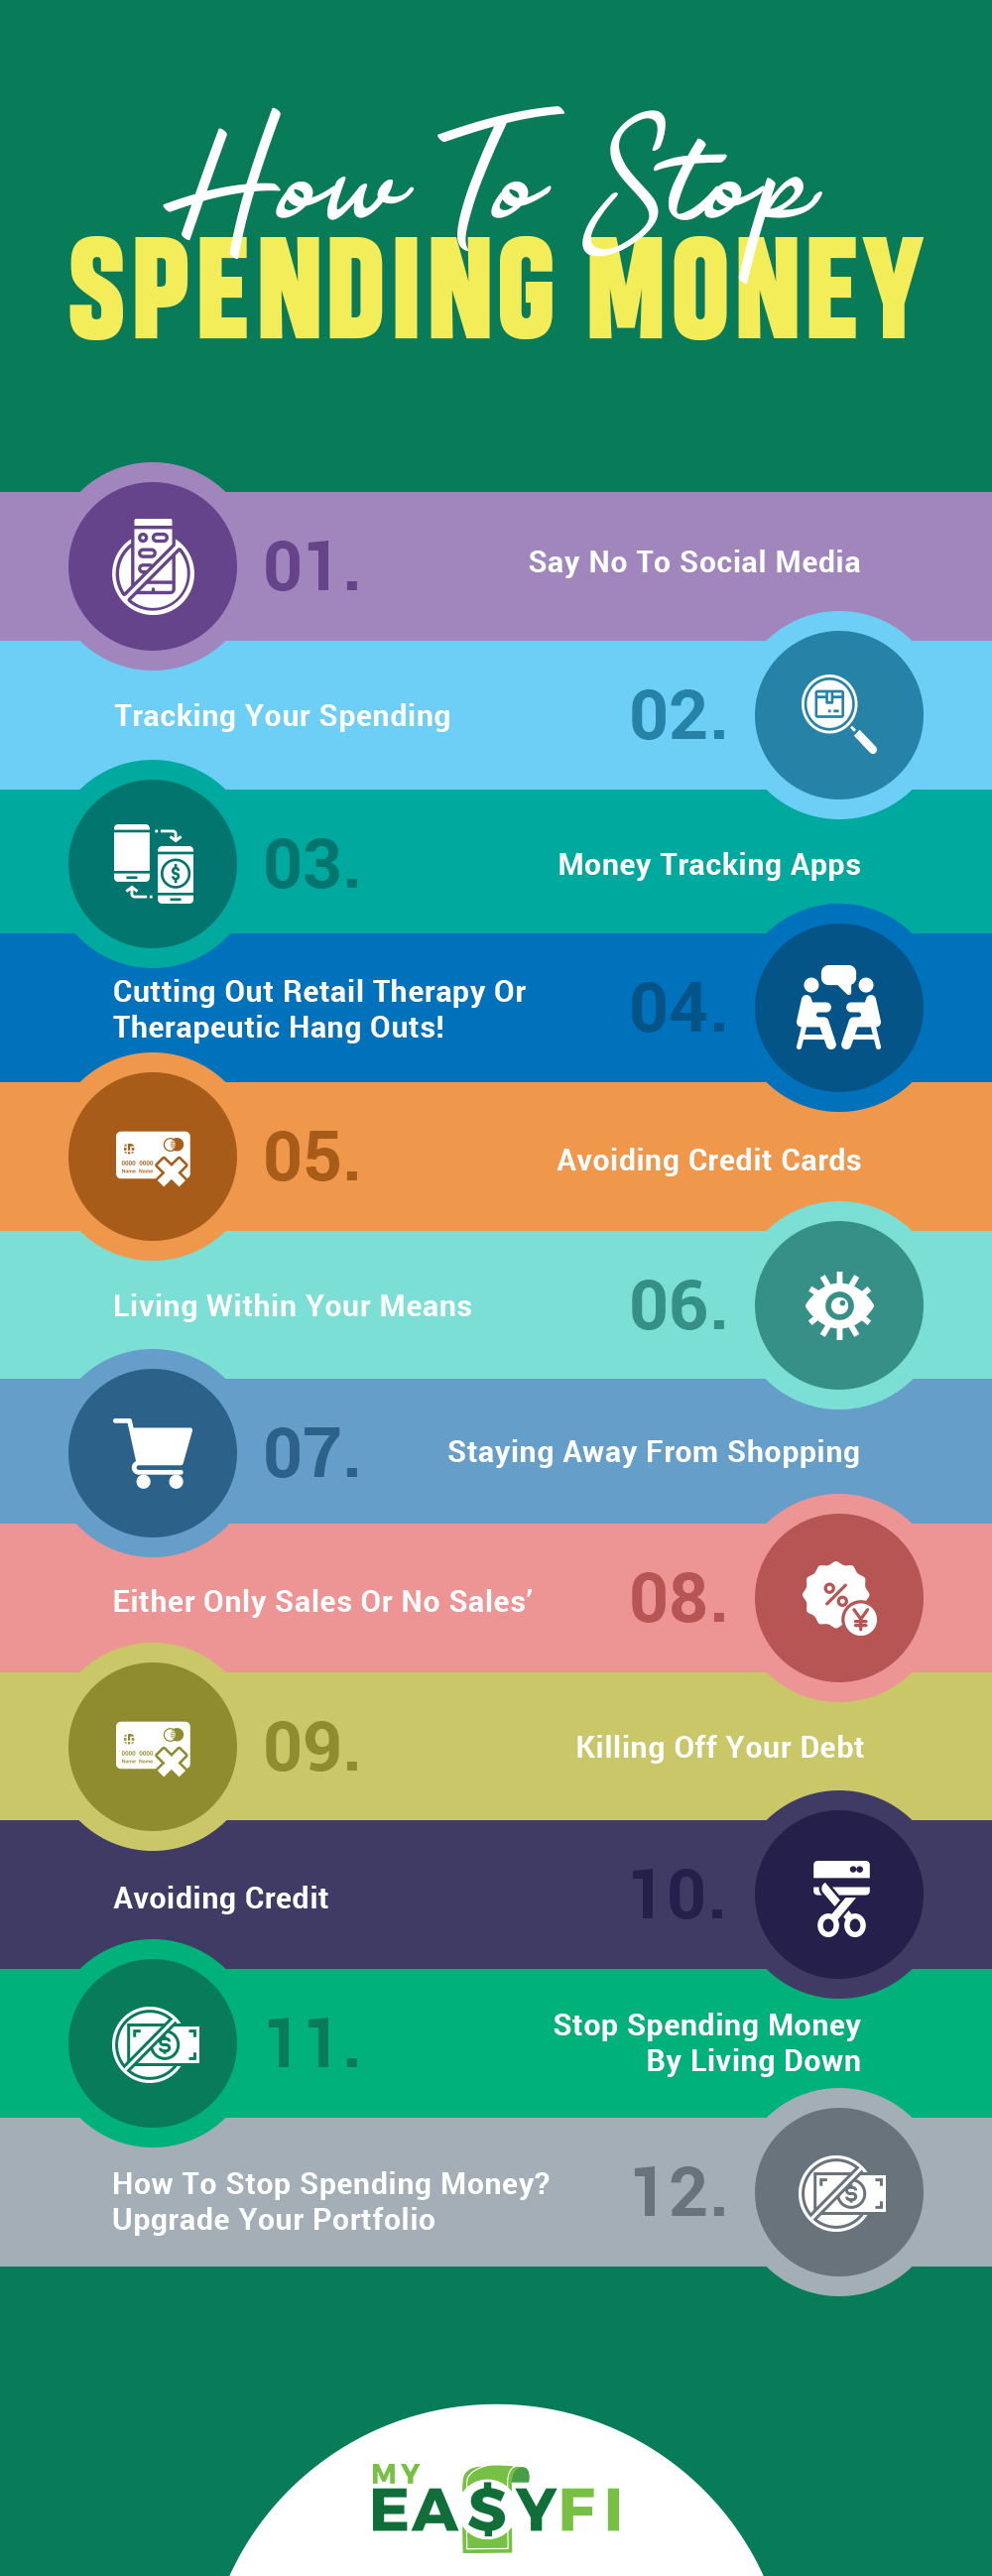 how to stop spending money infographic